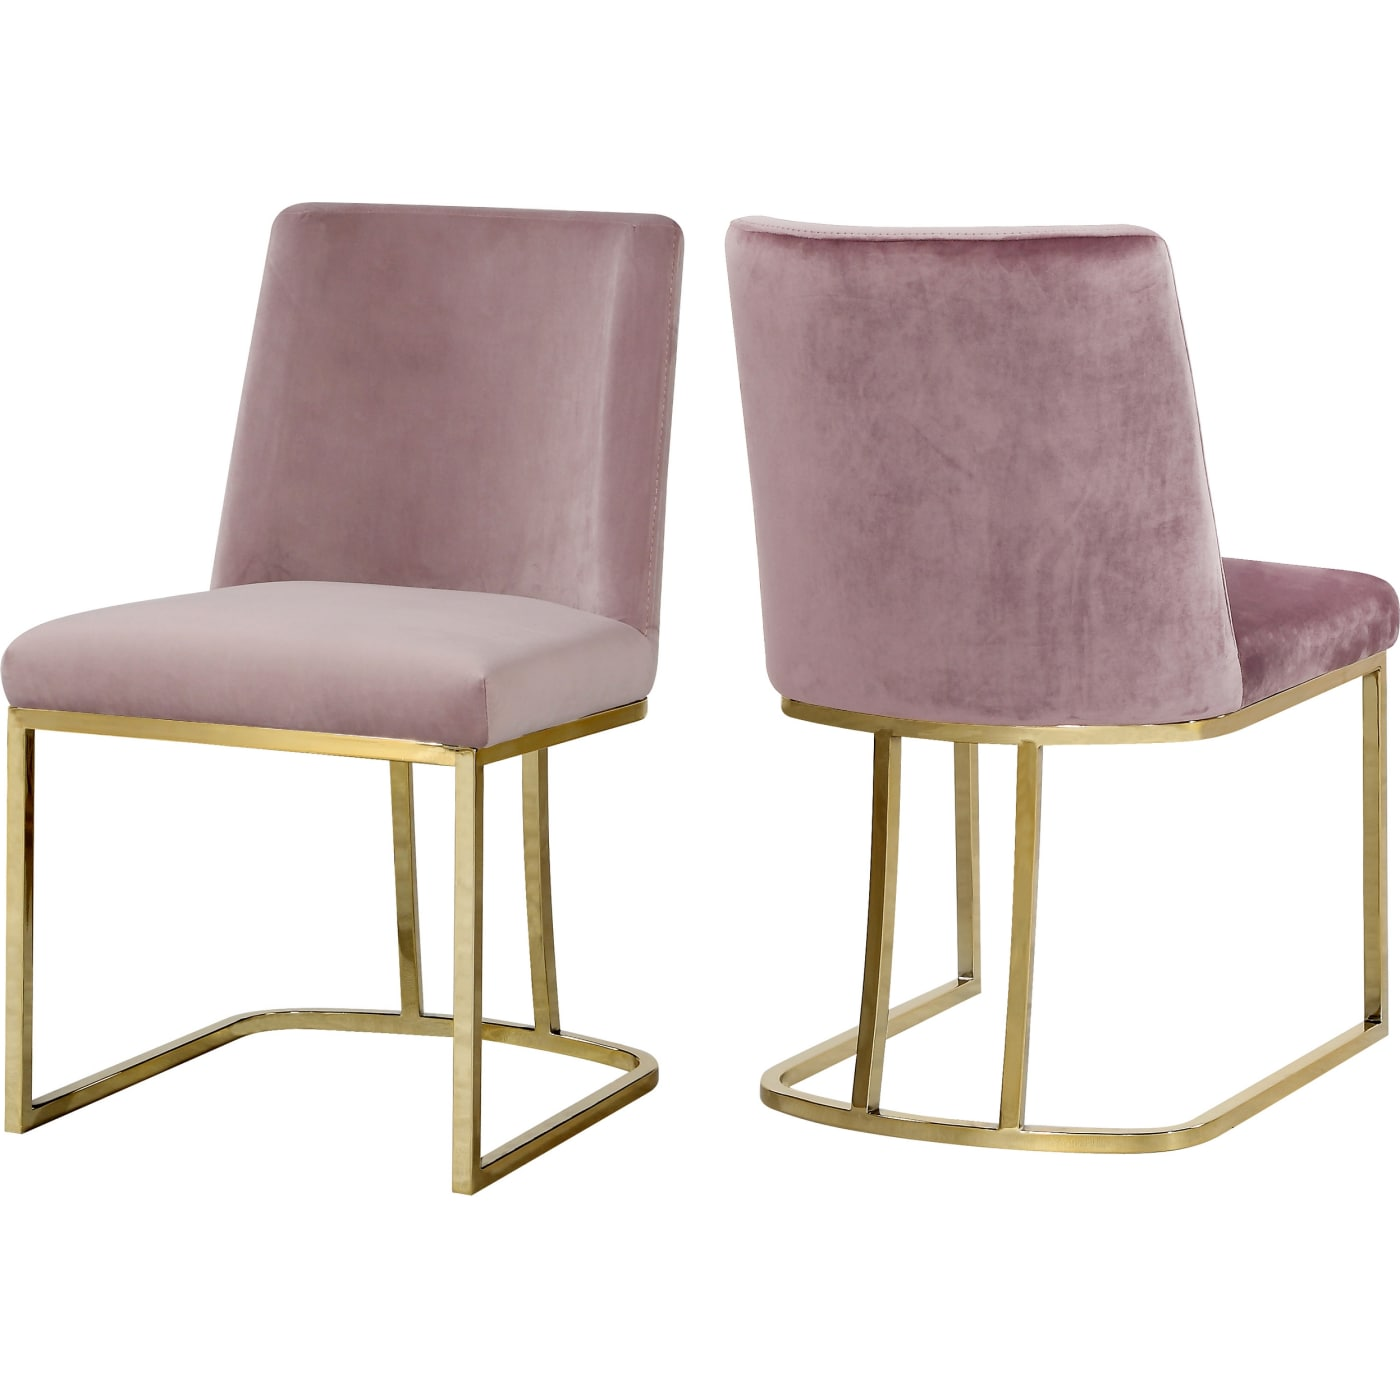 Set includes 2 dining chairs furniture colors may vary based on computer monitor and room lighting